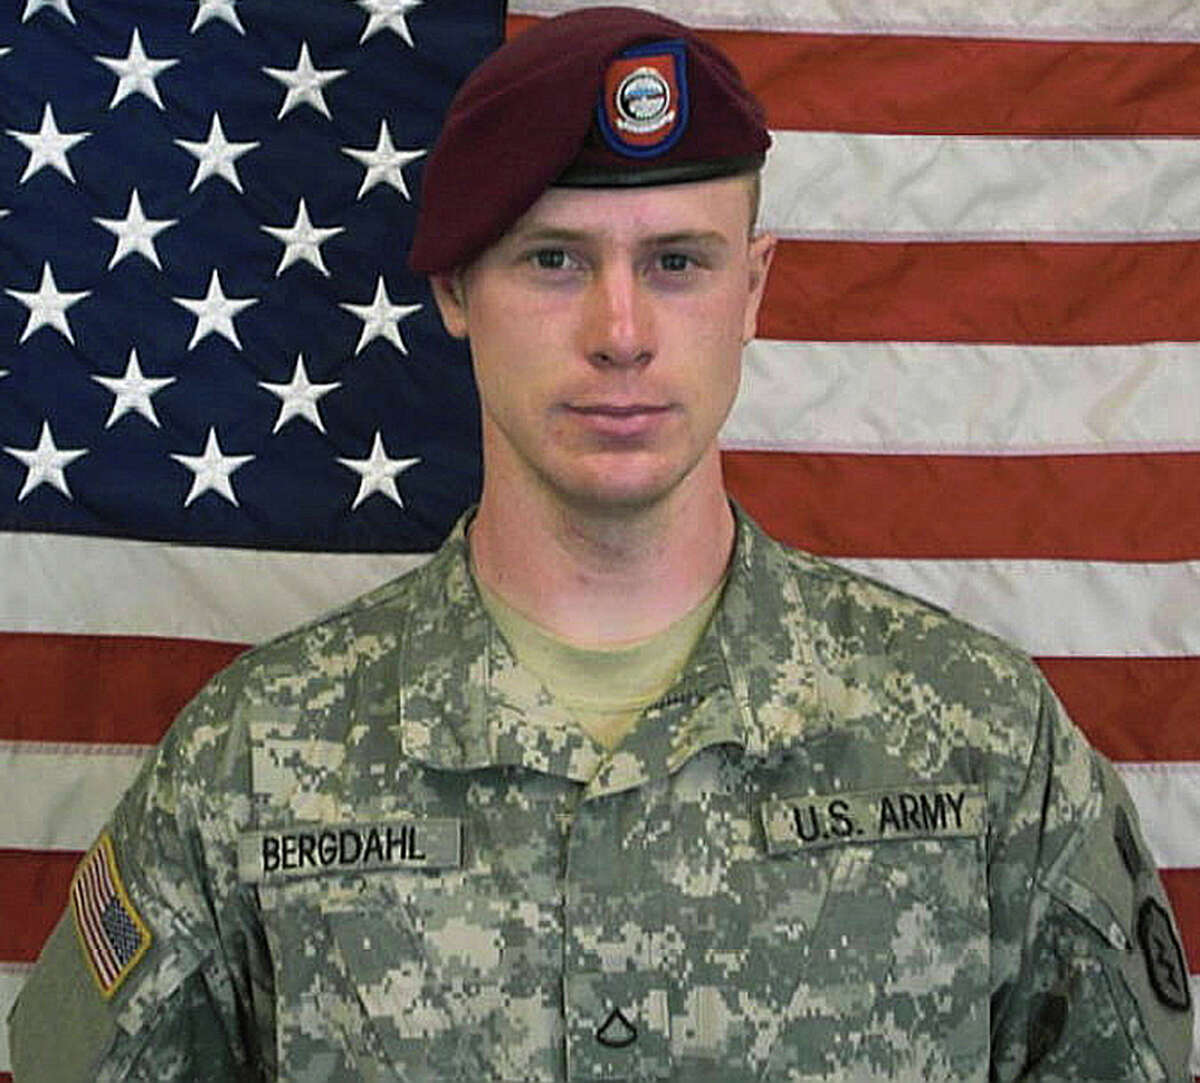 FILE - This undated file photo provided by the U.S. Army shows Sgt. Bowe Bergdahl. Army and Pentagon officials said Tuesday, Jan. 27, 2015, there has been no decision on what, if any, criminal charges will be filed against Sgt. Bowe Bergdahl, the soldier who left his post in Afghanistan, was captured by the Taliban and held for five years before being released in a prisoner exchange. (AP Photo/U.S. Army, File)